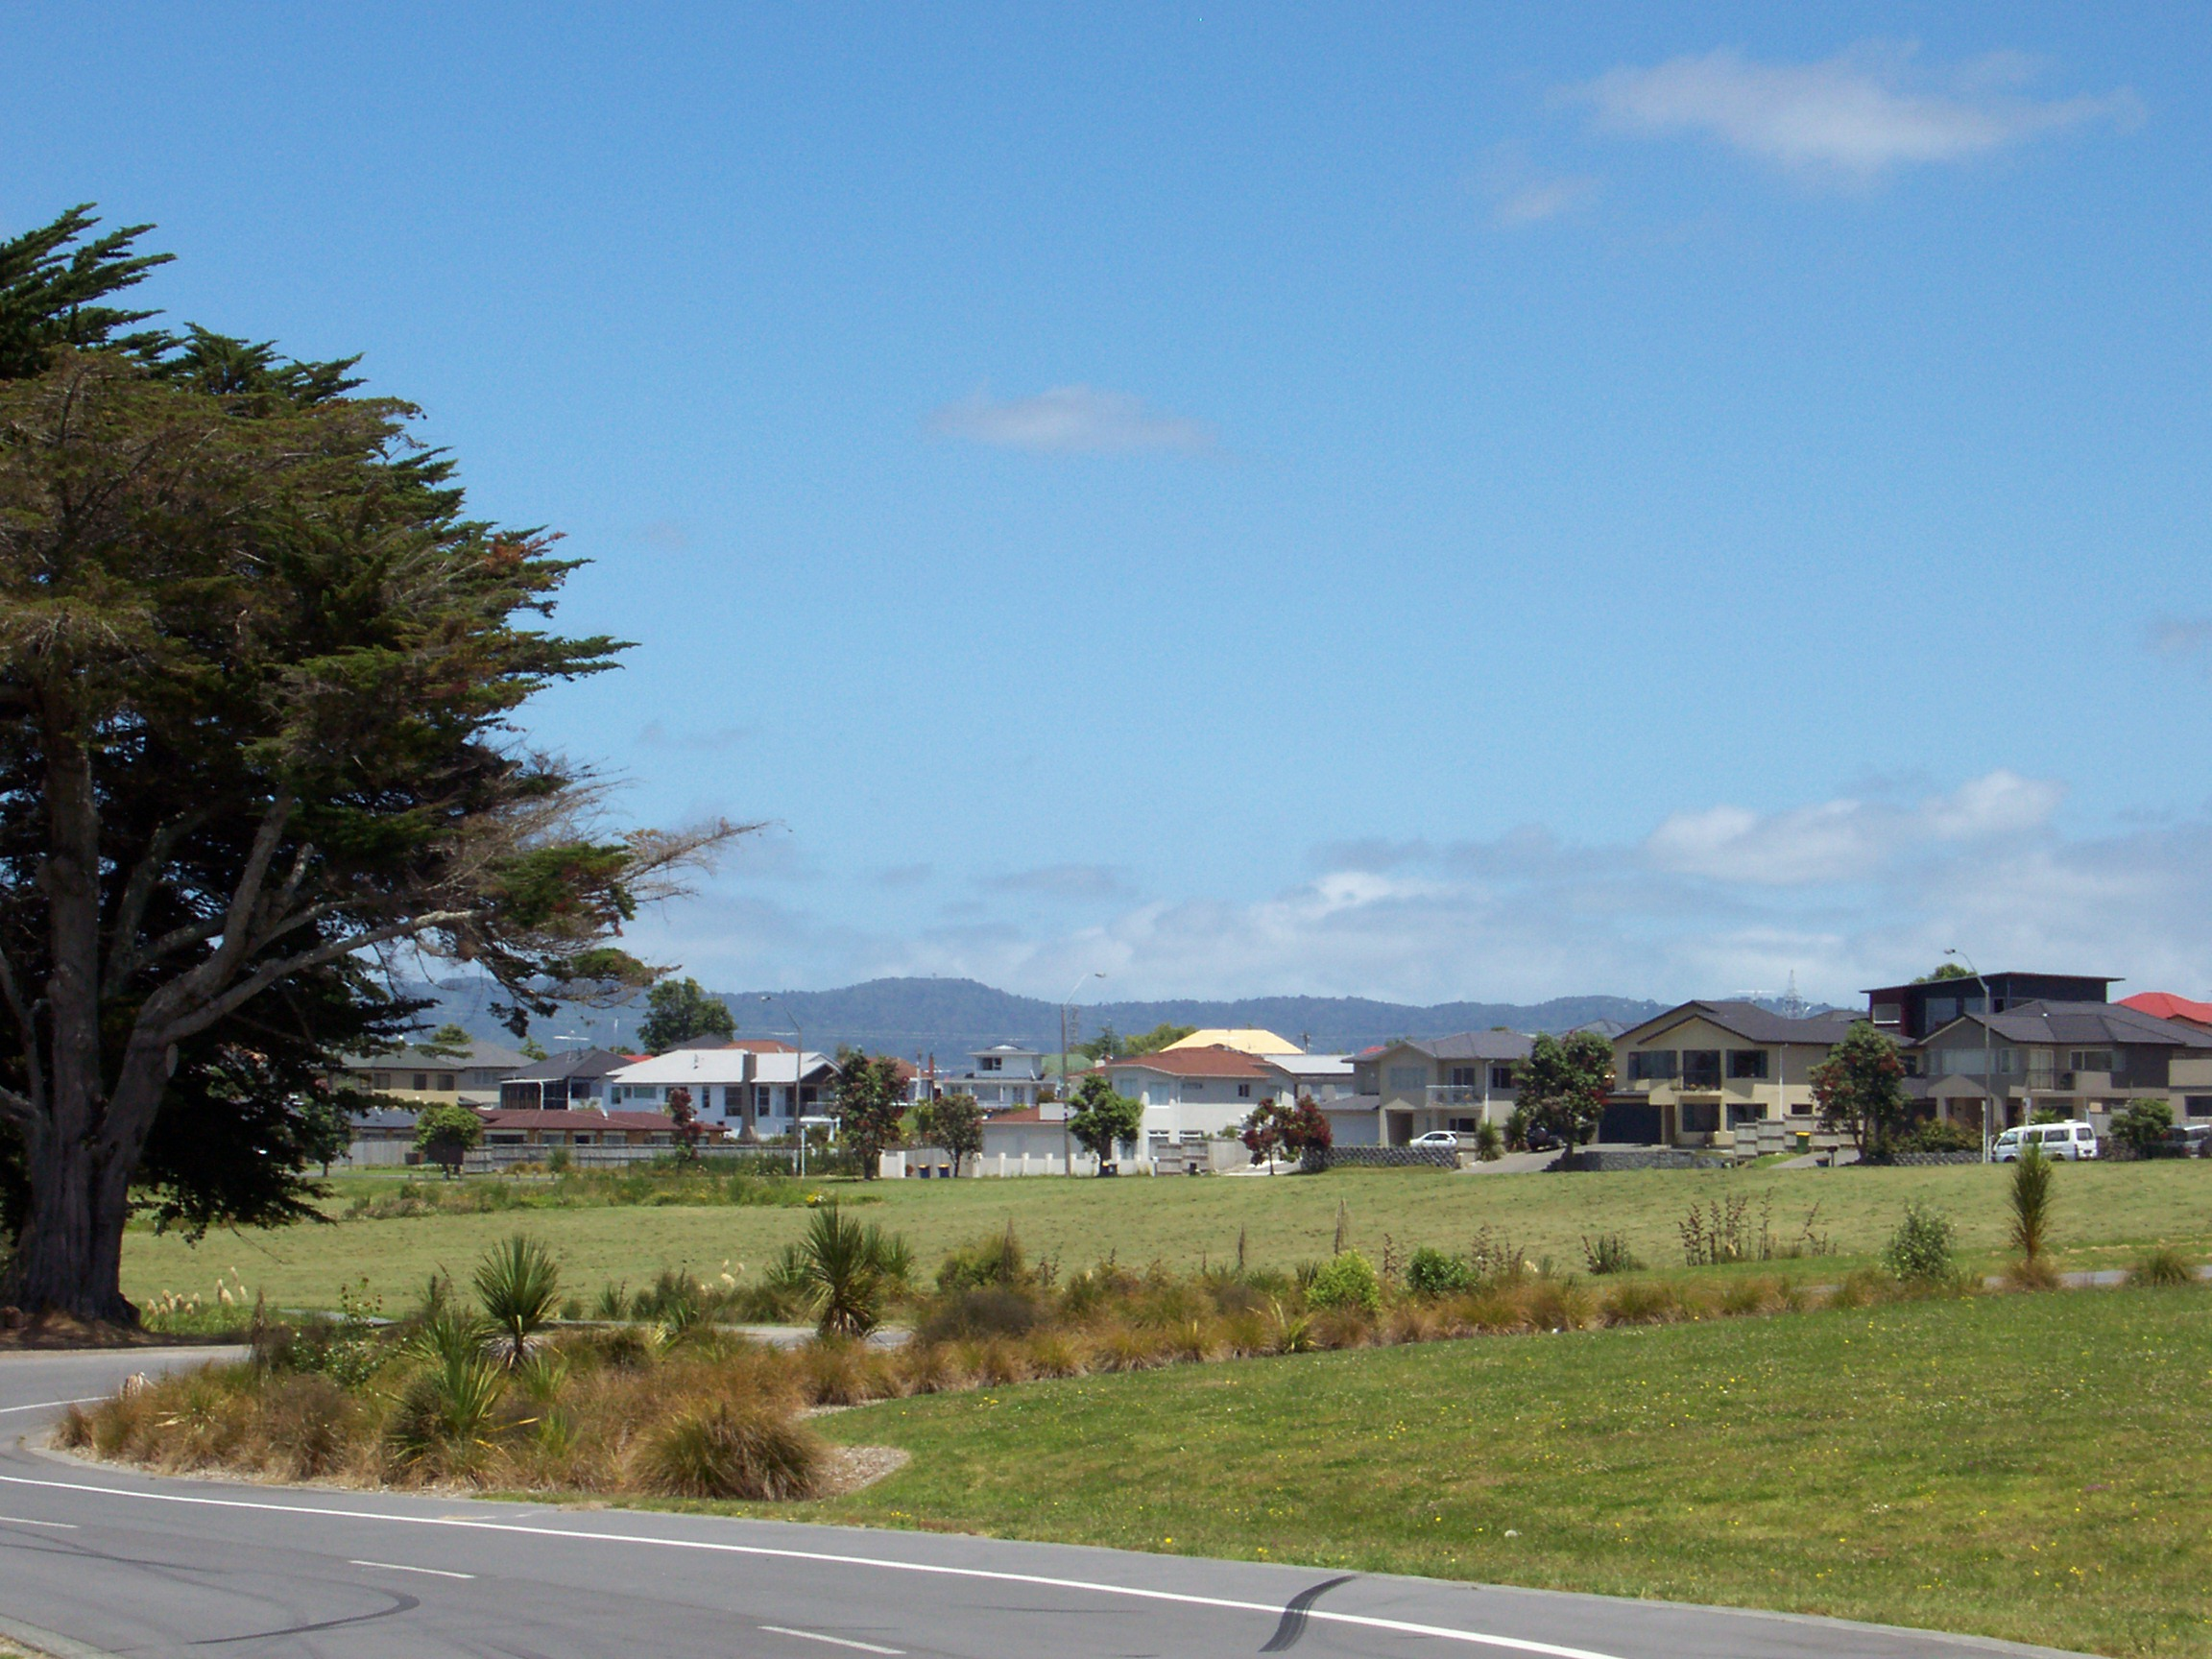 Environment and Community Committee Decision Digests Feb. 18: Waitakere Ranges to Be Closed